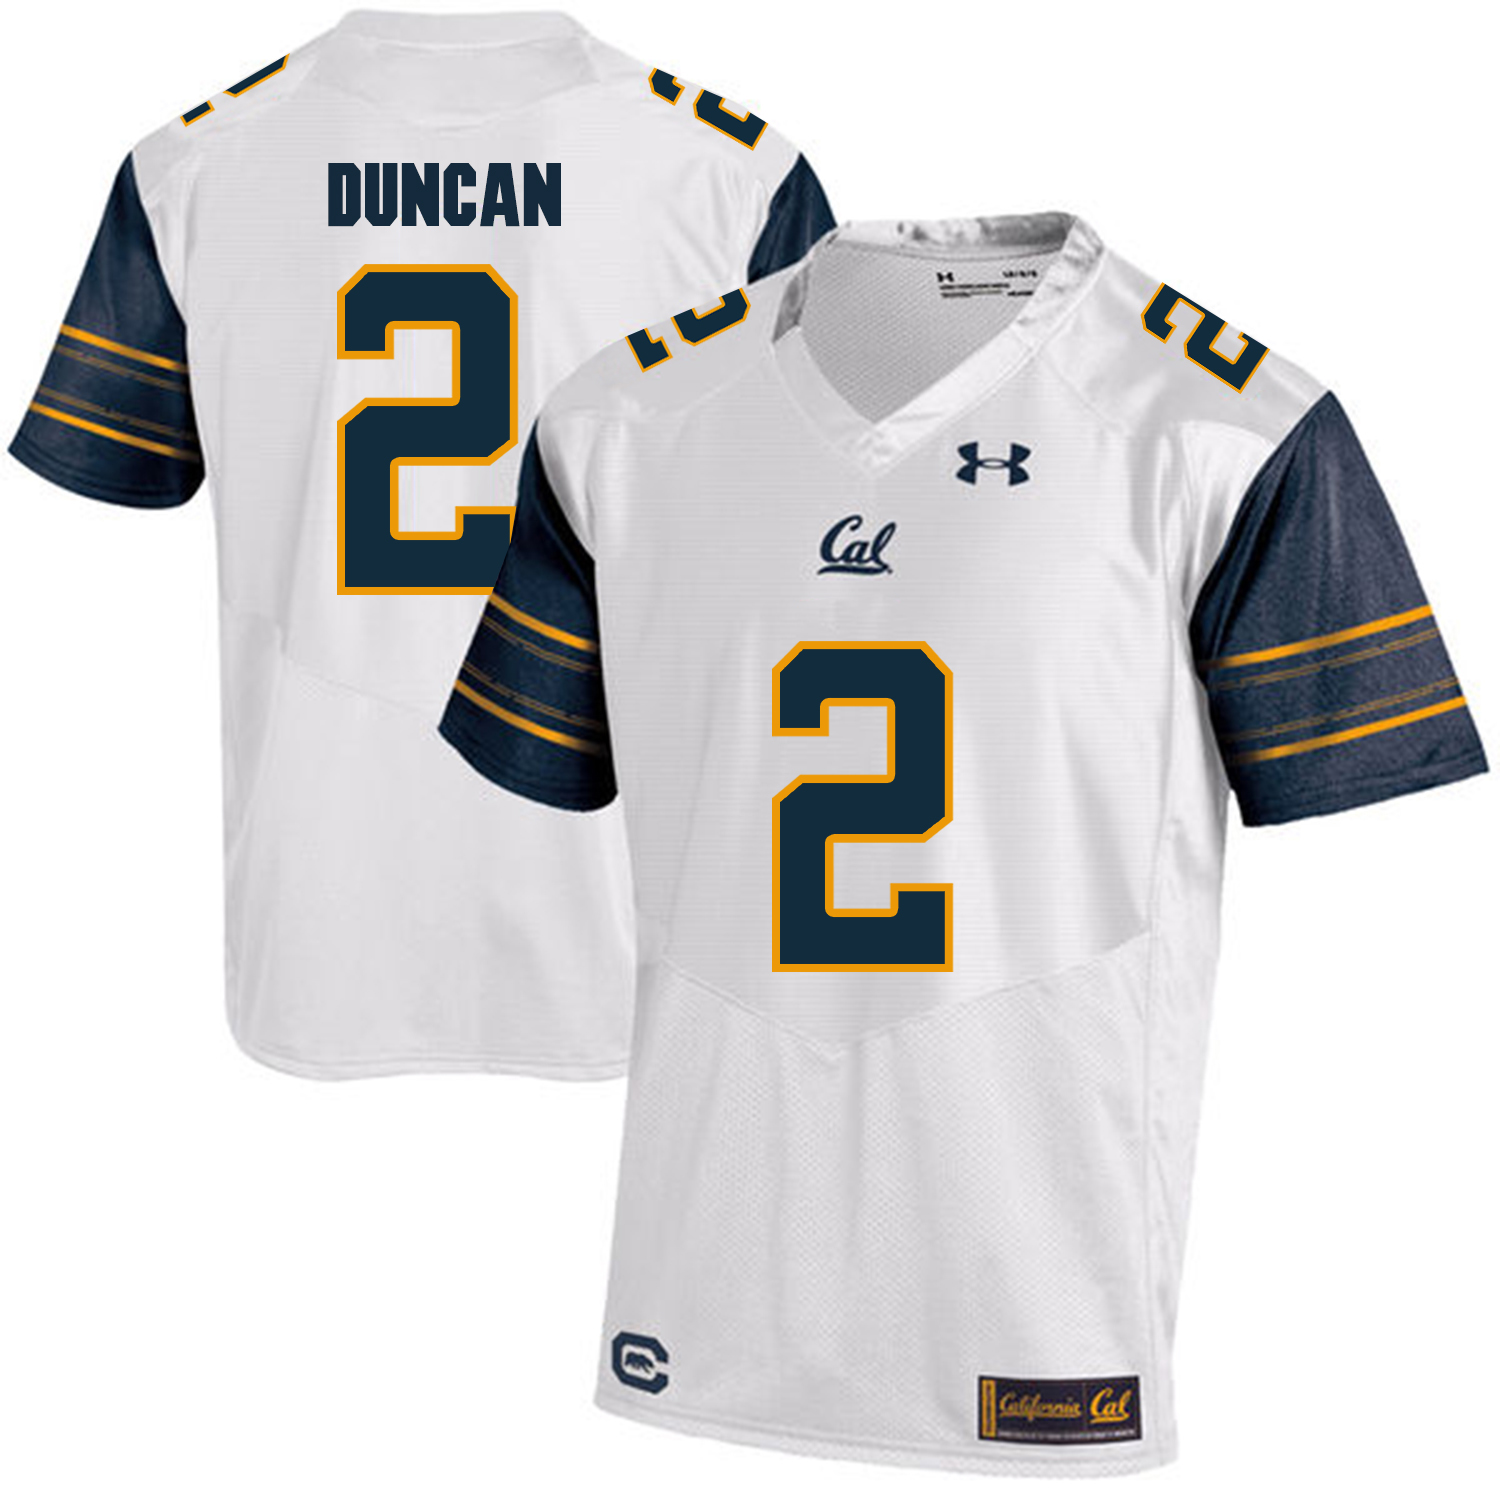 California Golden Bears 2 Jordan Duncan White College Football Jersey